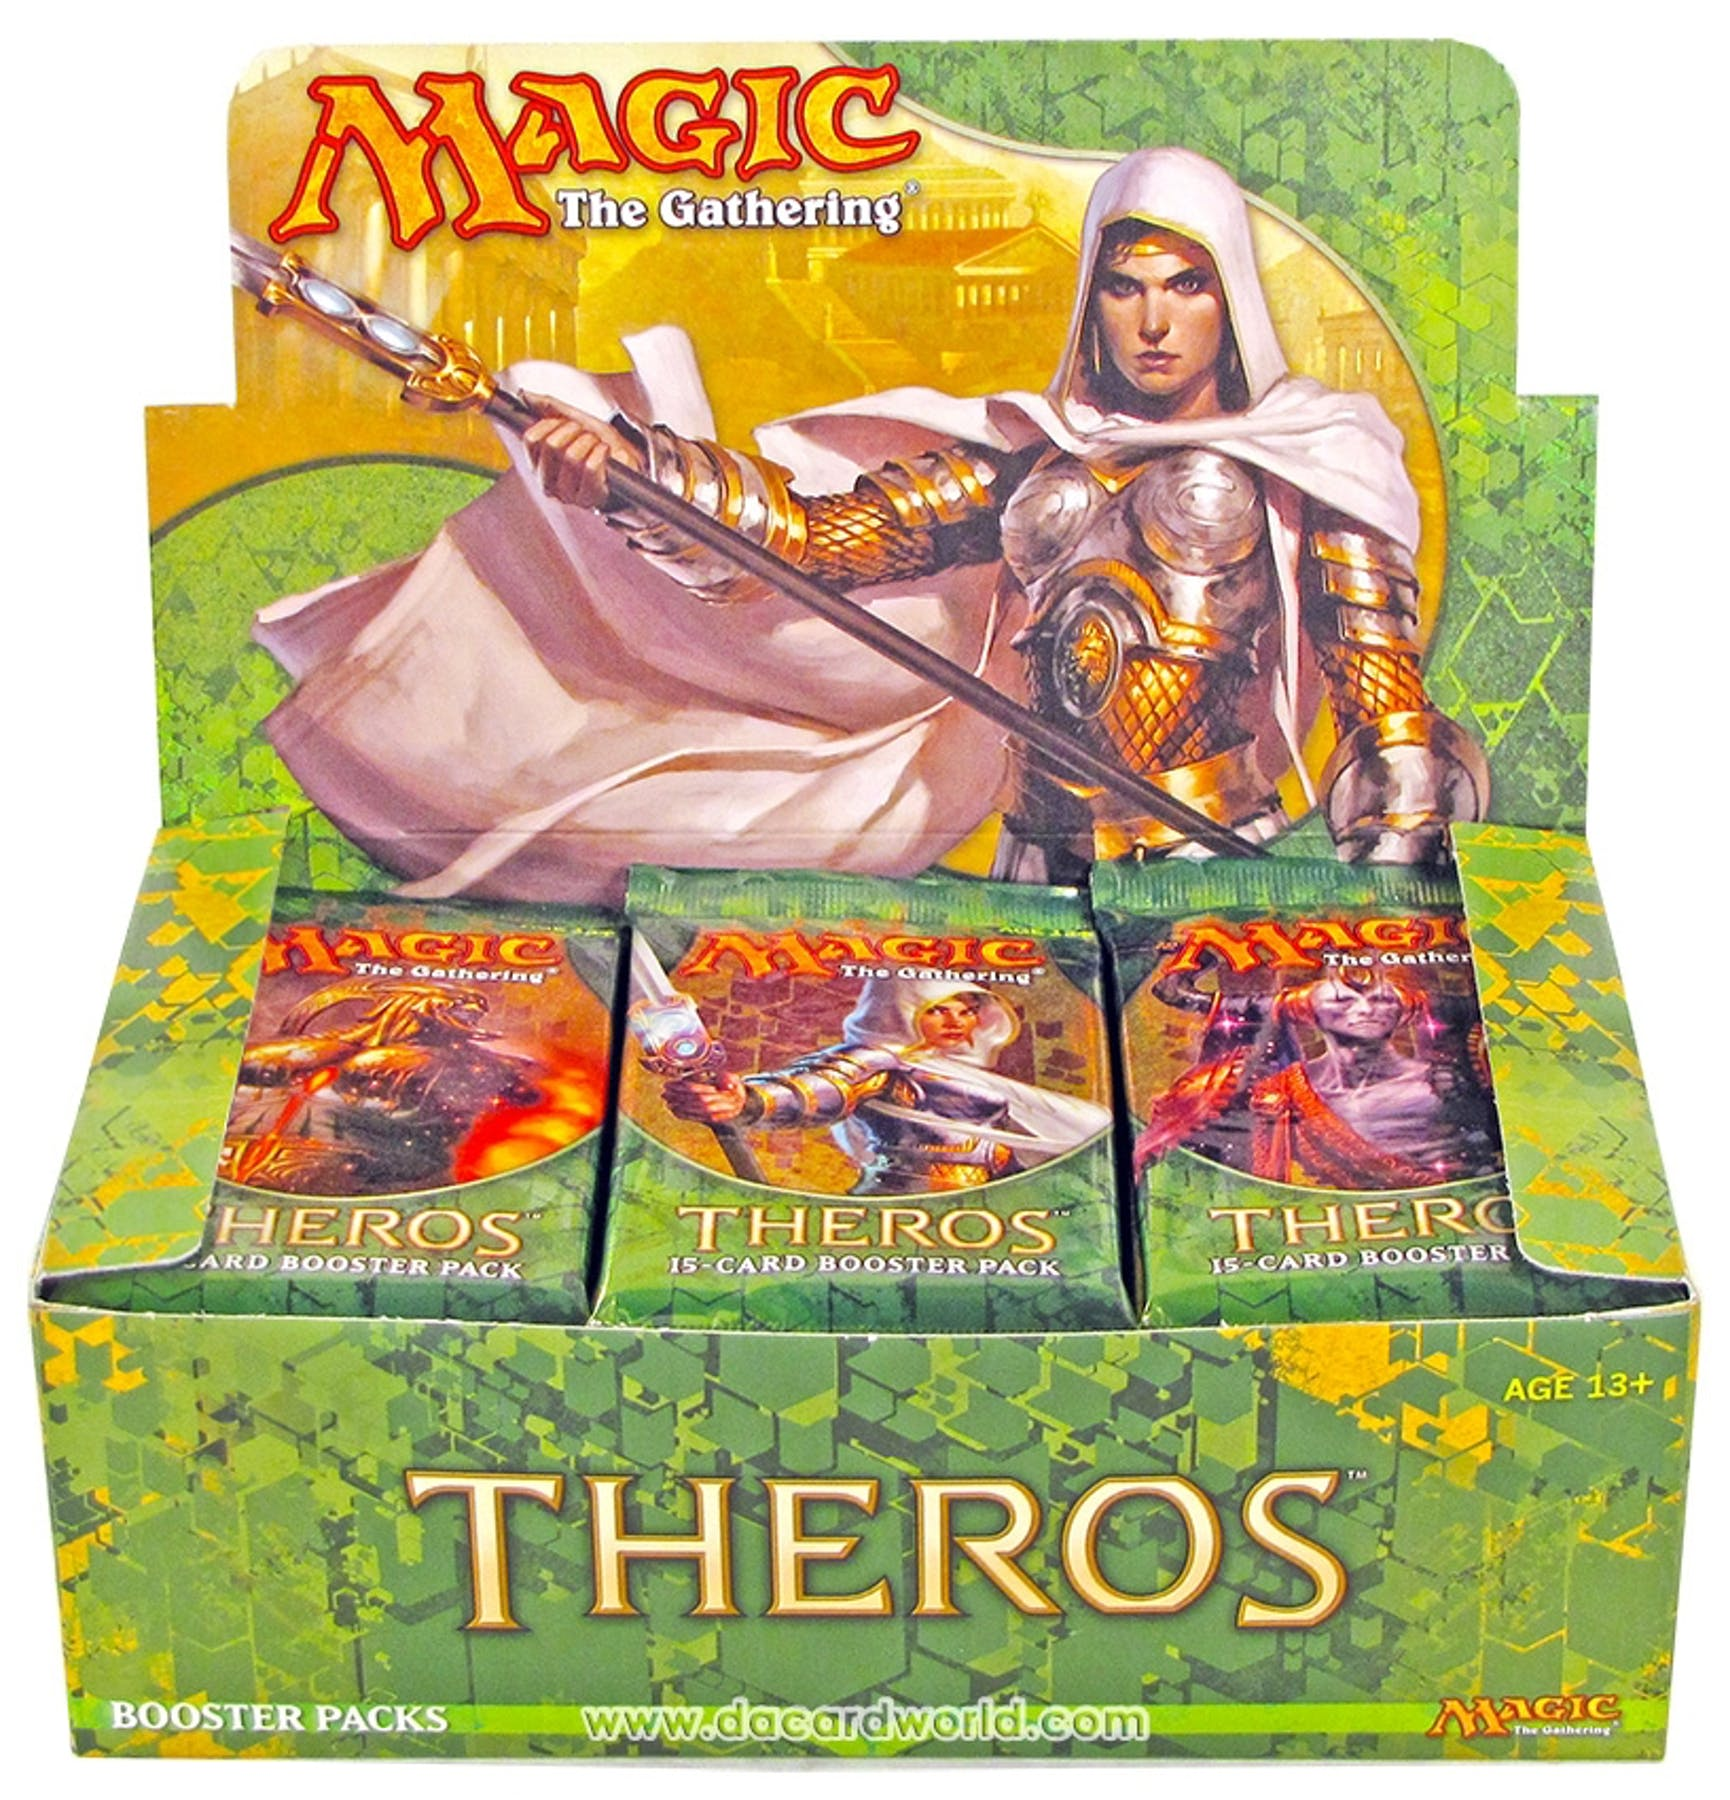 Magic The Gathering Theros Booster 6 Box Case Da Card World